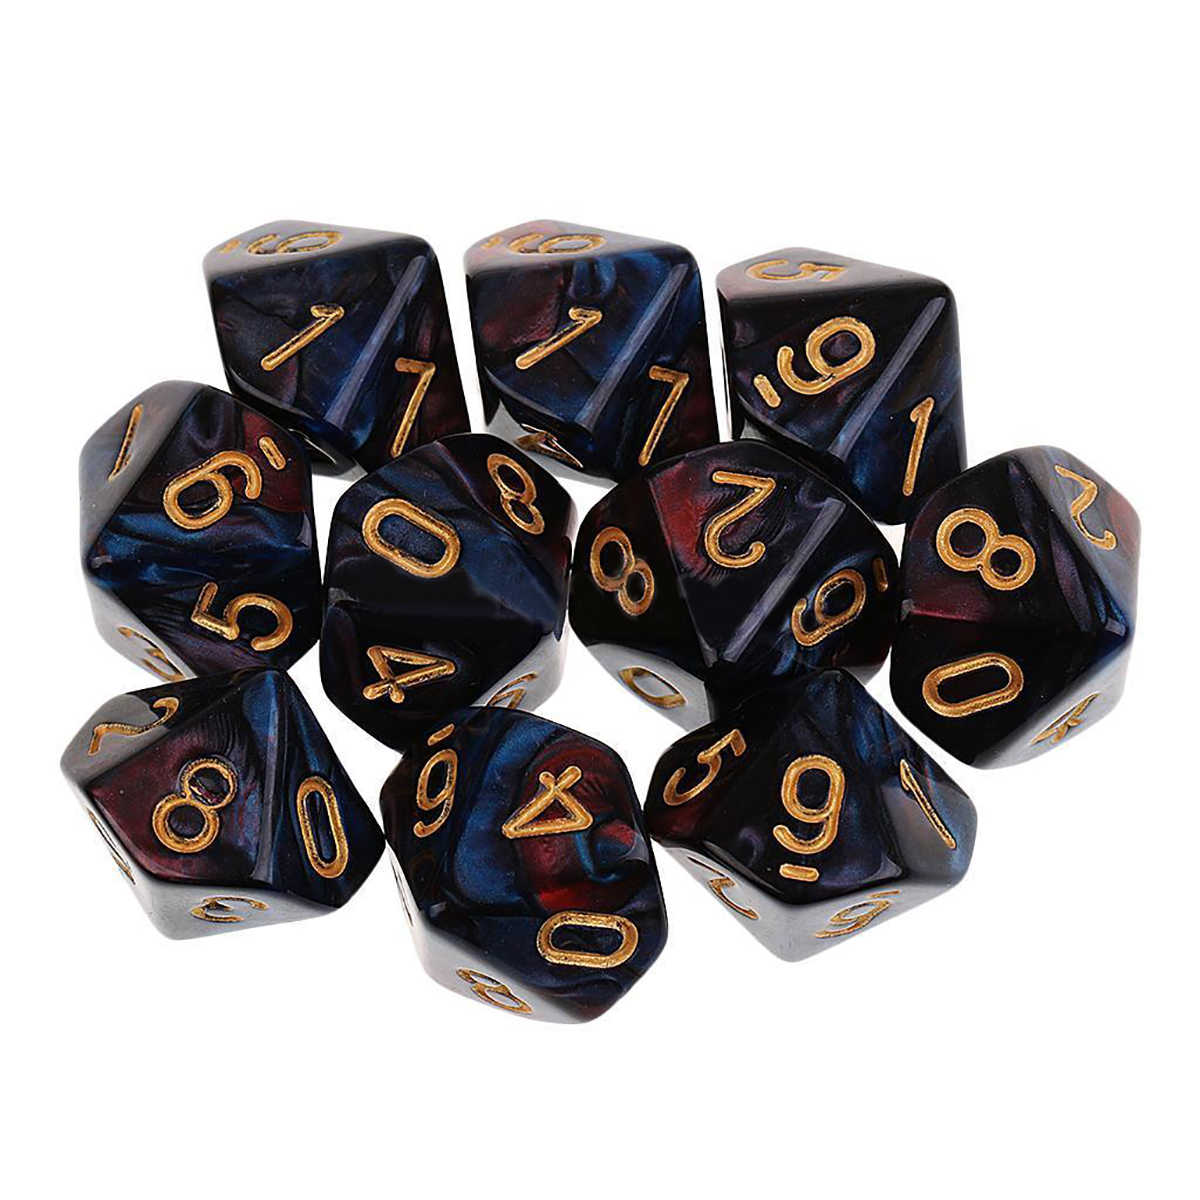 NIEUWE Acryl 10PCS D10 Zijdig Dices Set Polyhedrale Sterven Voor Dungeons And Dragons Tafel Games Playing Game